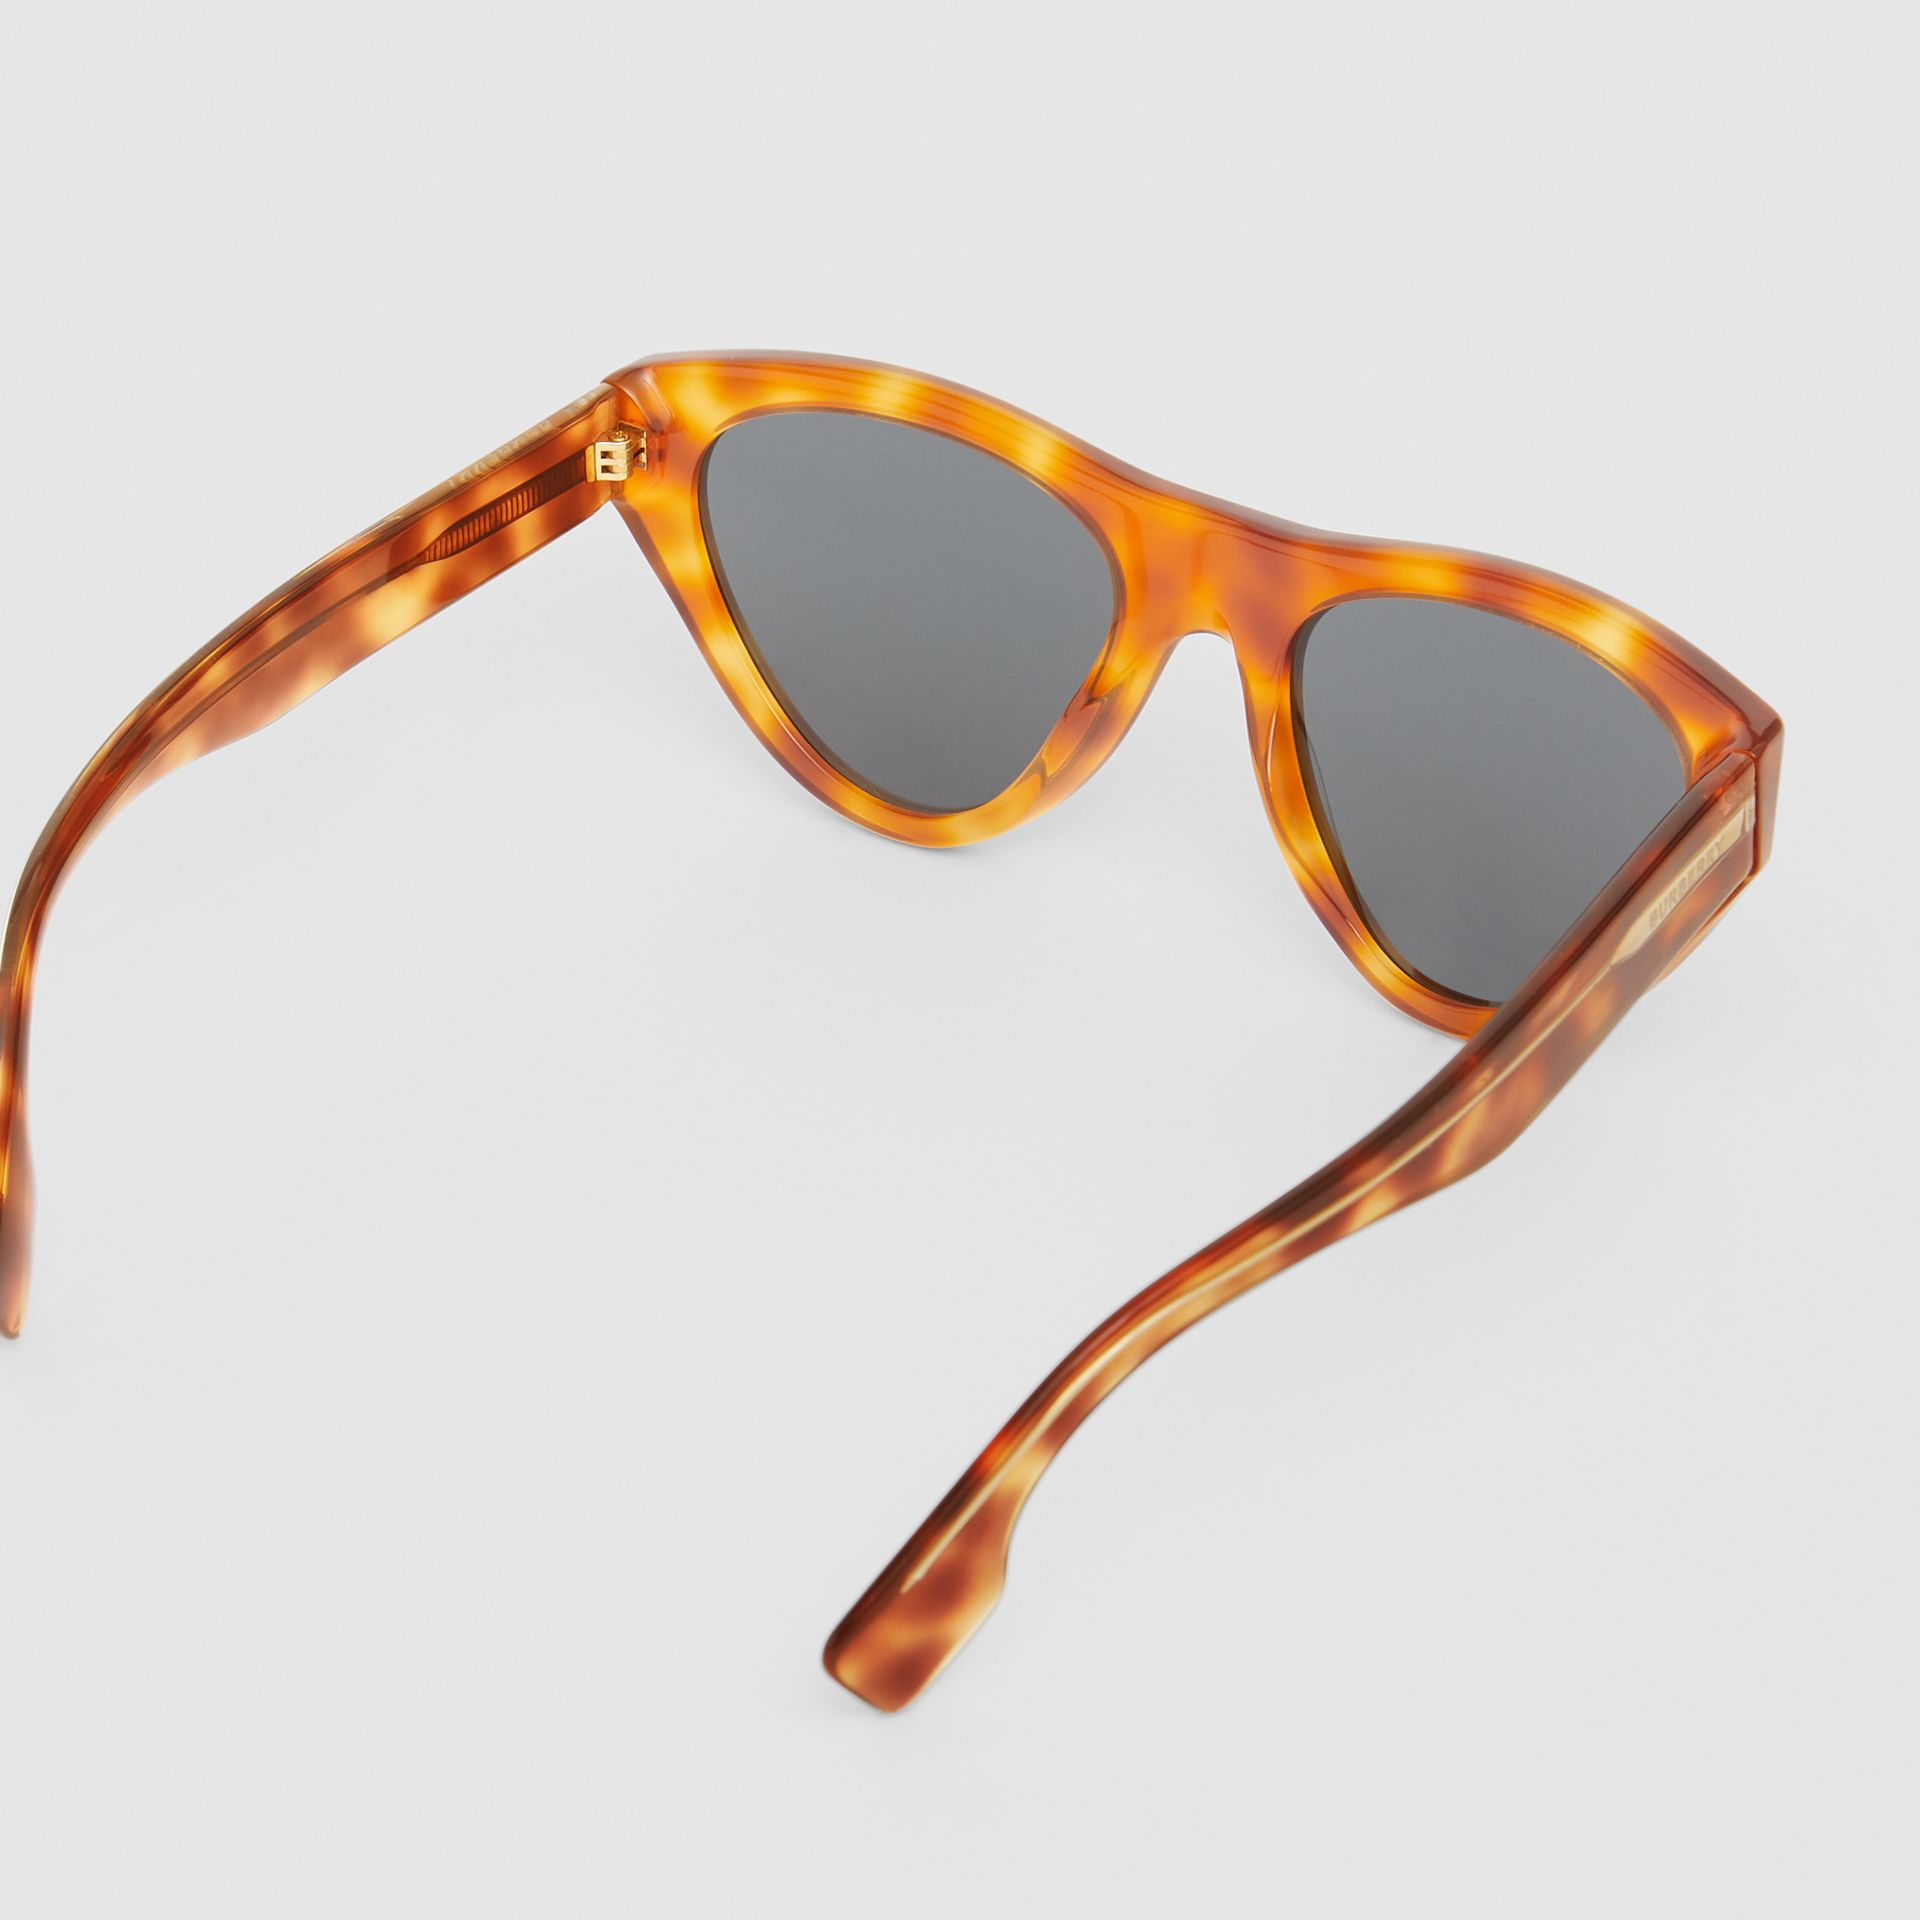 Triangular Frame Sunglasses in Tortoise Amber - Women | Burberry - gallery image 4